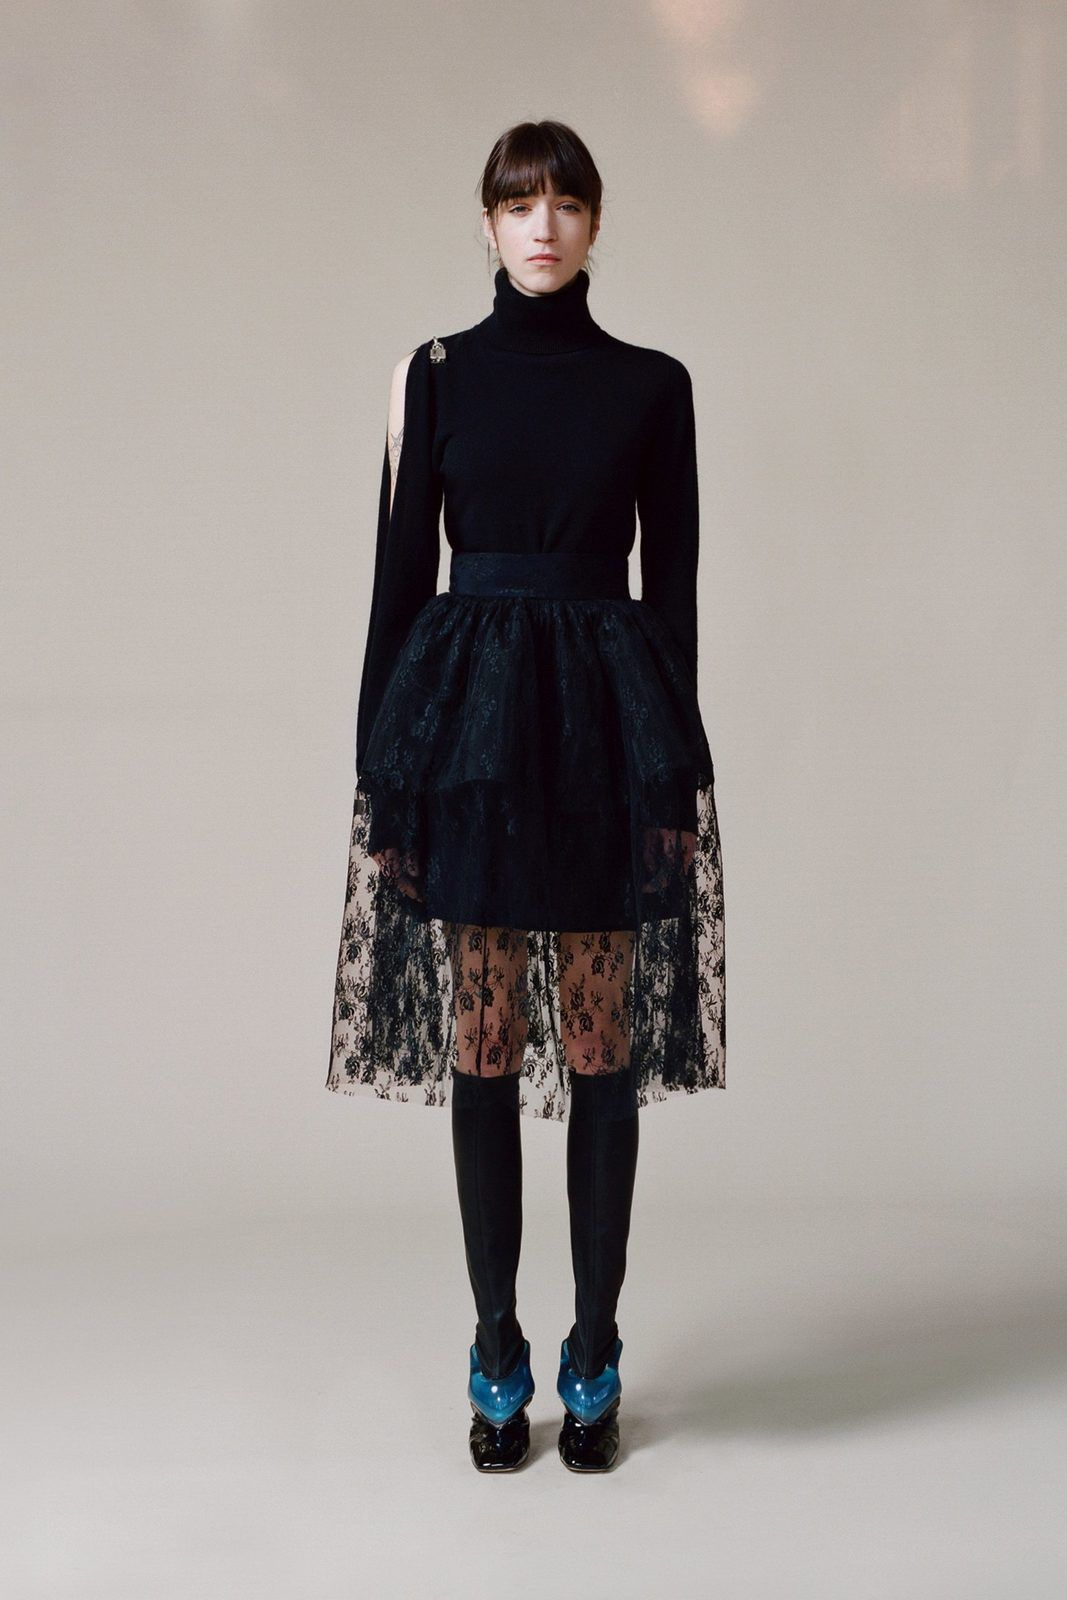 CHRISTOPHER KANE PRE FALL 2020 RTW COLLECTION